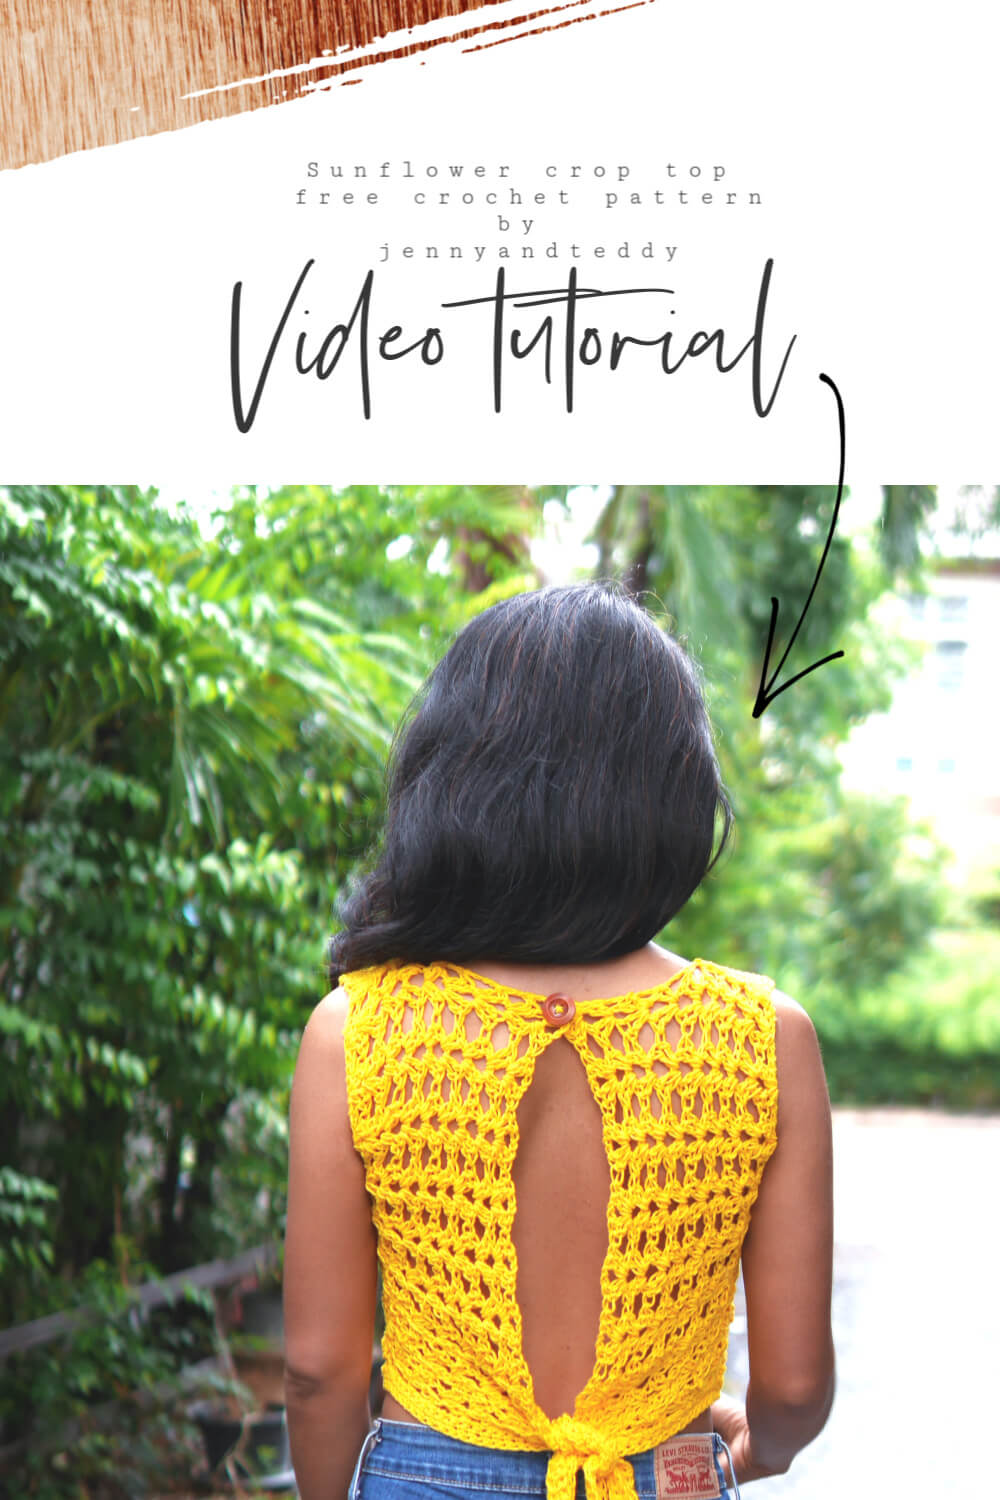 sunflower croptop free crochet pattern